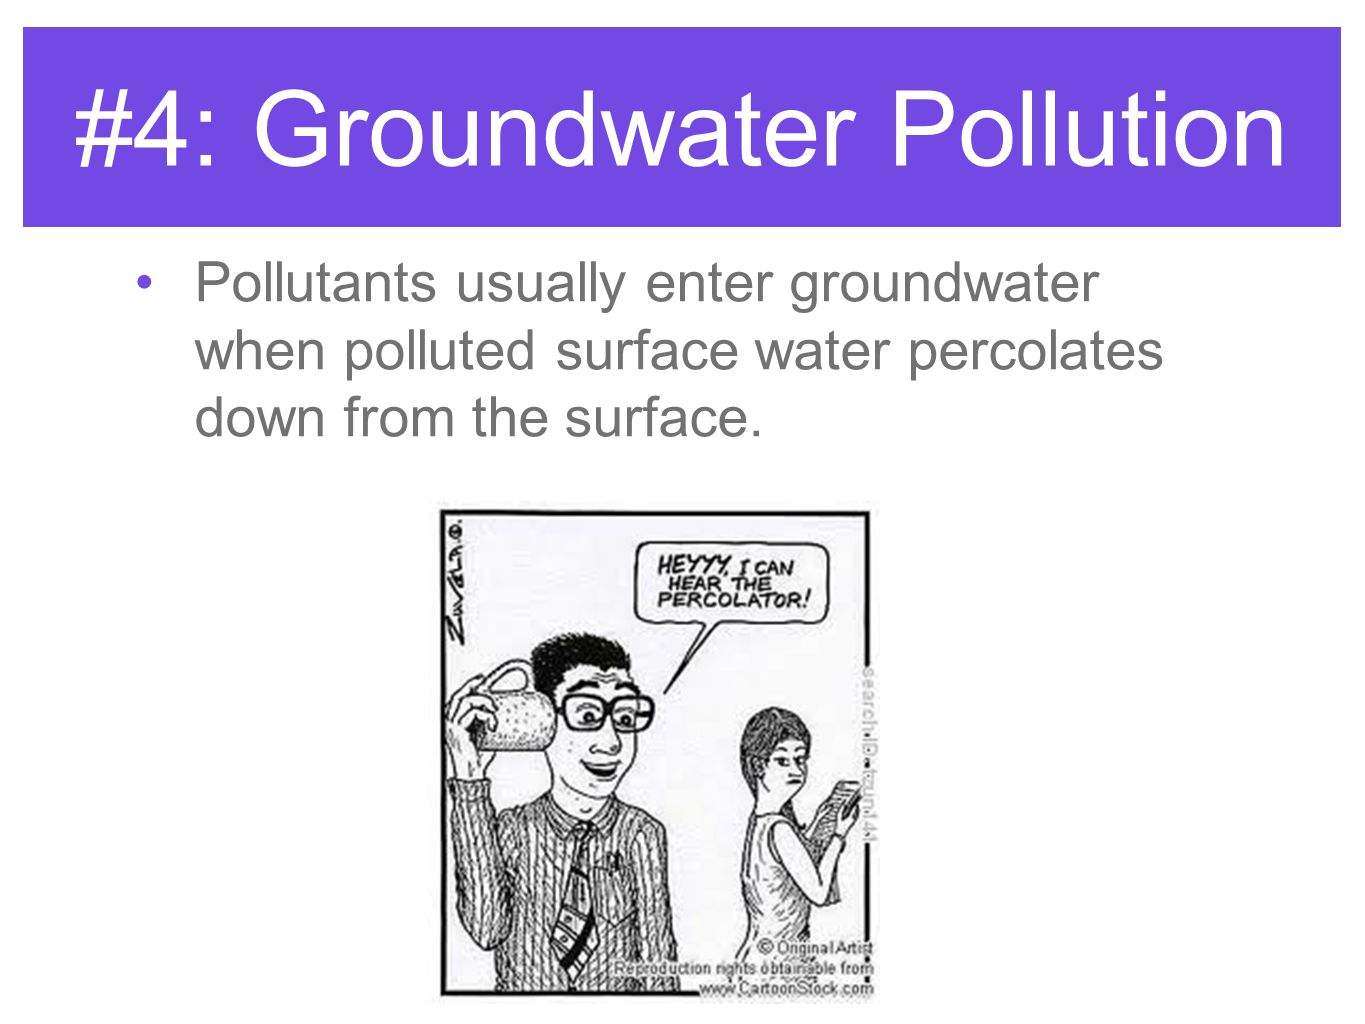 #4: Groundwater Pollution